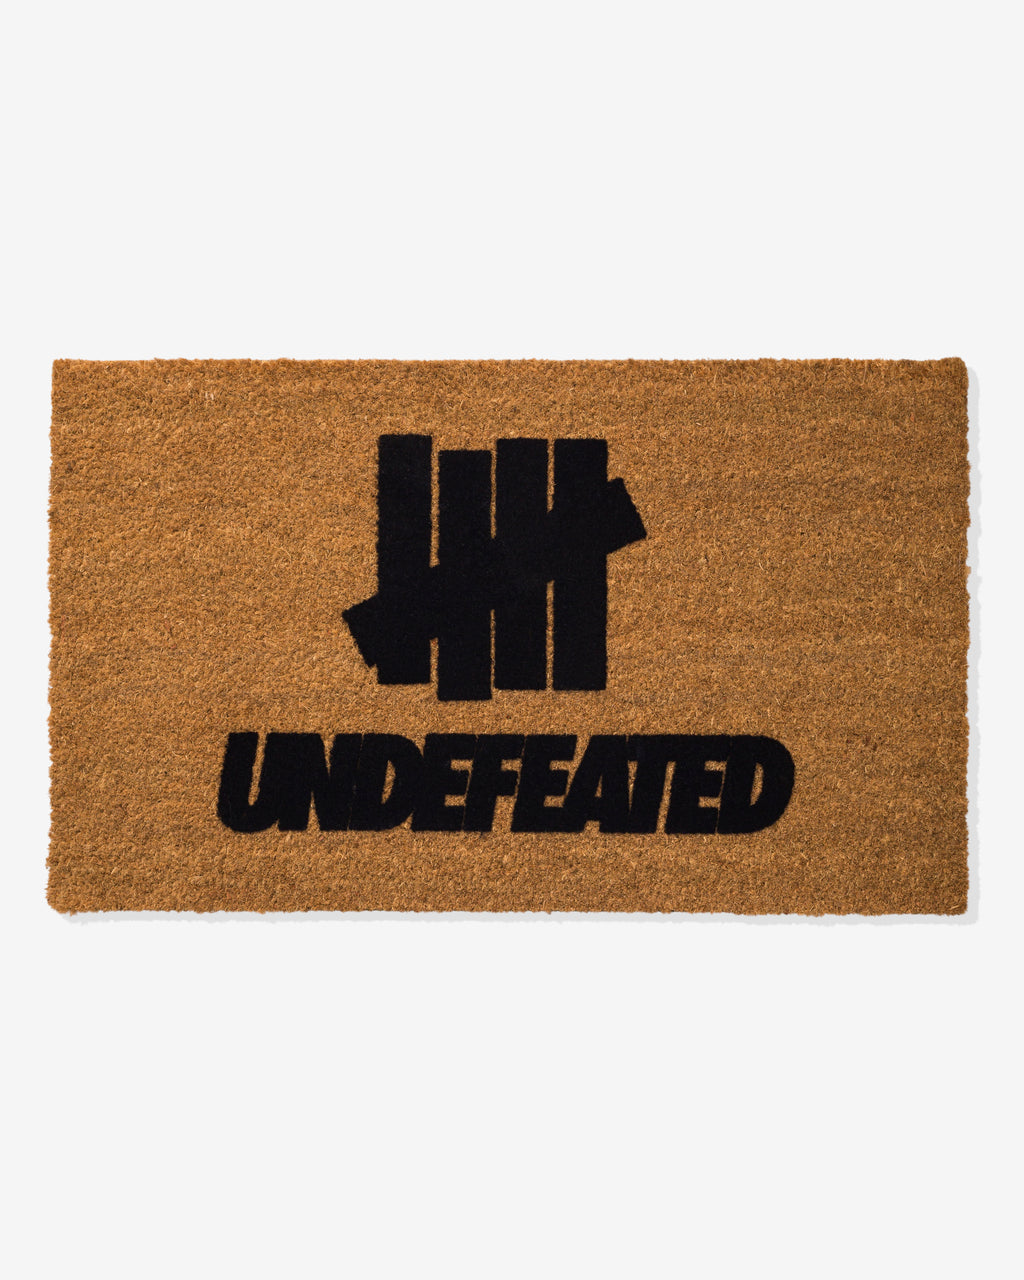 UNDEFEATED DOOR MAT - NATURAL